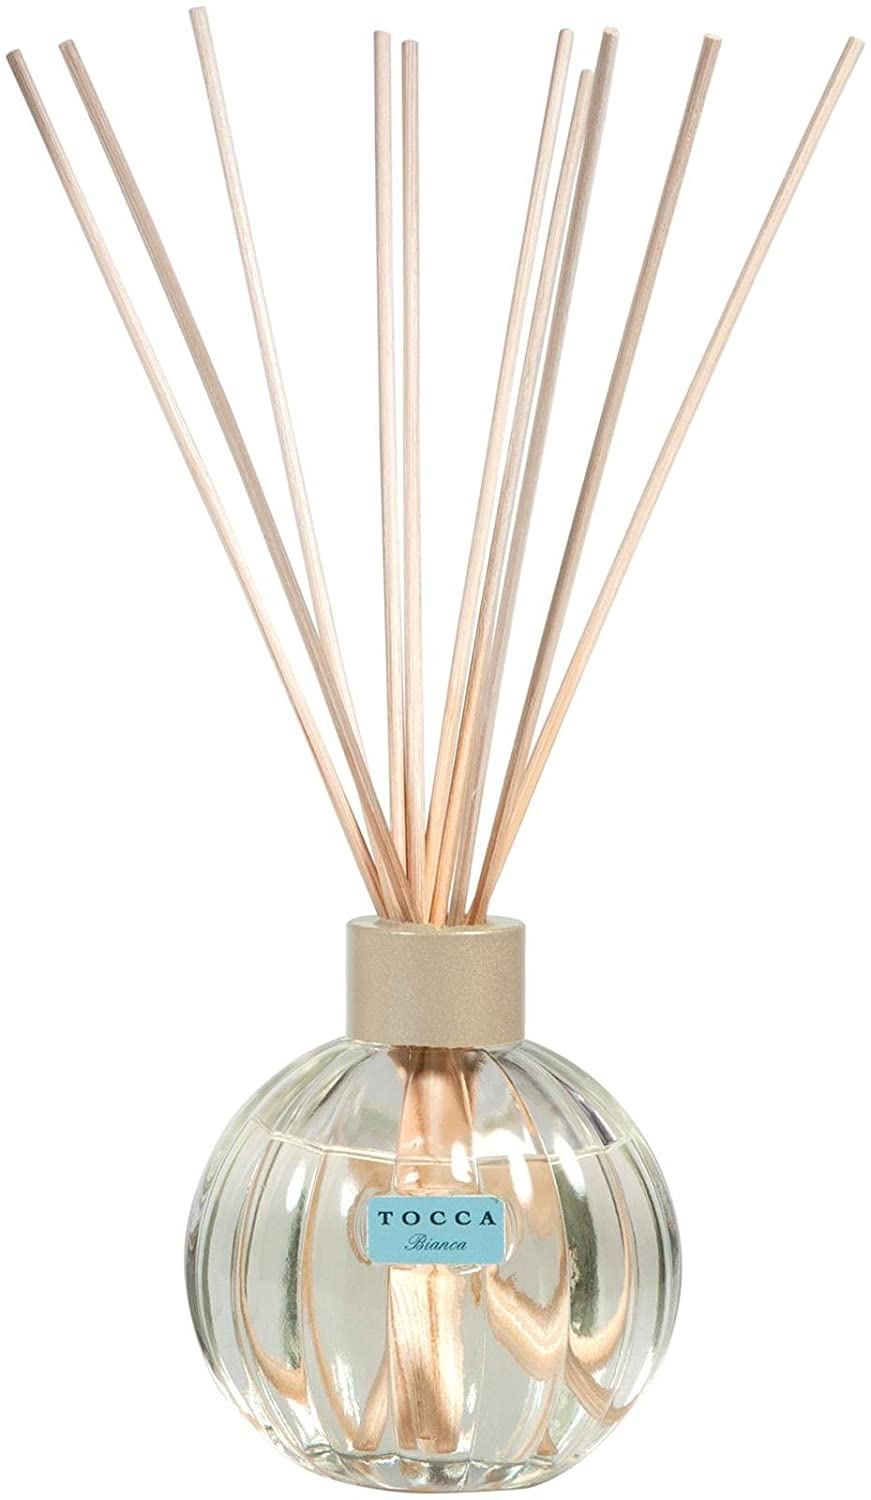 Tocca Fragrance Reed Diffuser - Bianca Profumo d'Ambiente - 175 ml